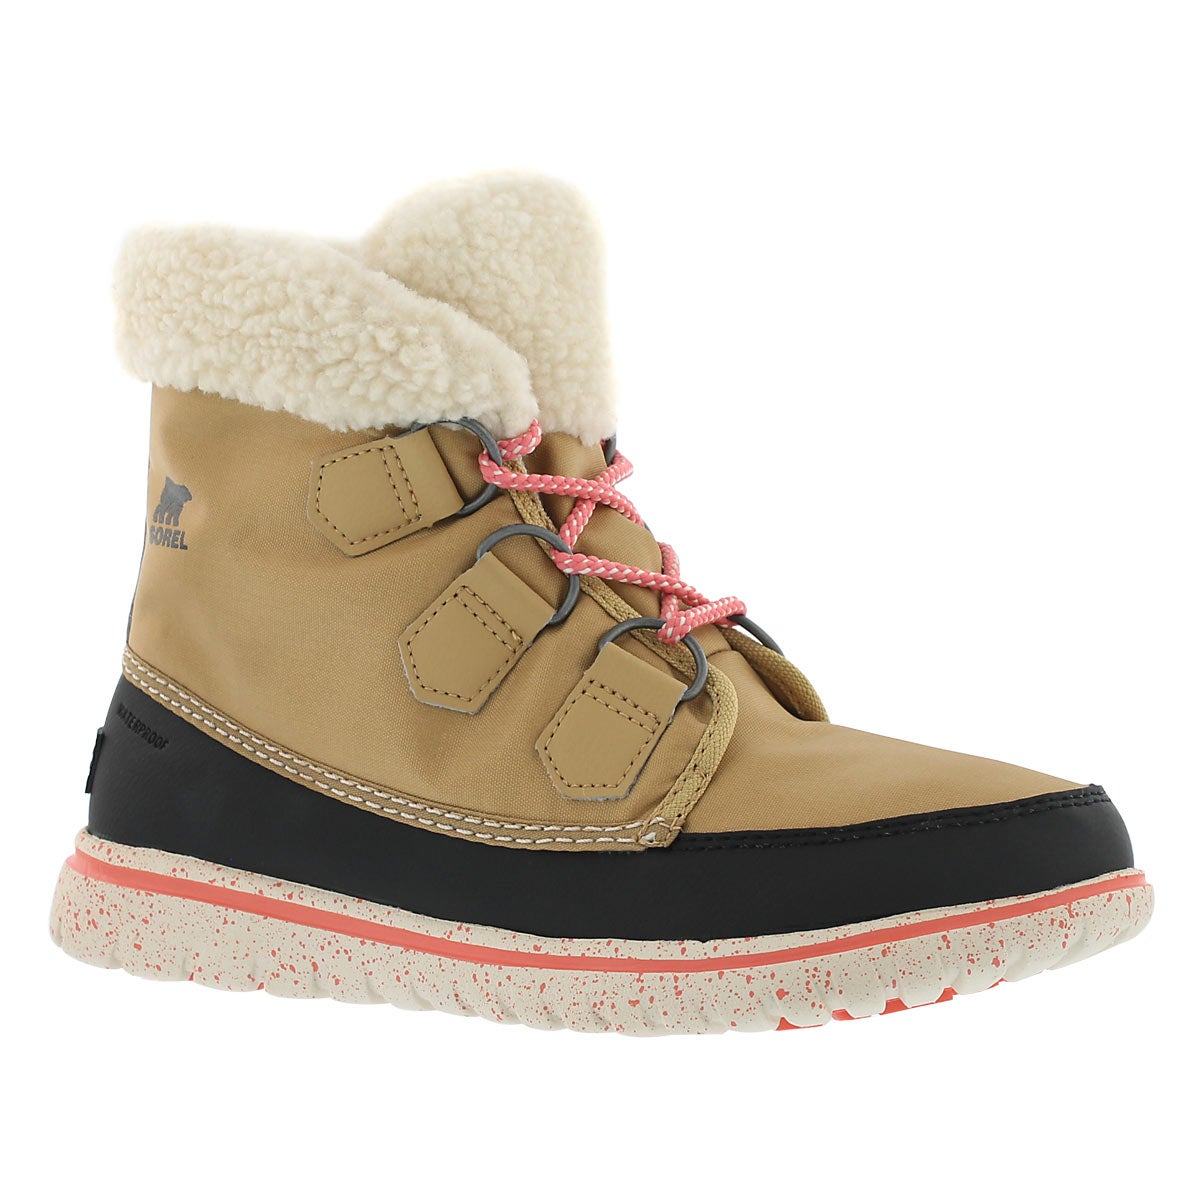 Lds Cozy Carnival curry low snow boot